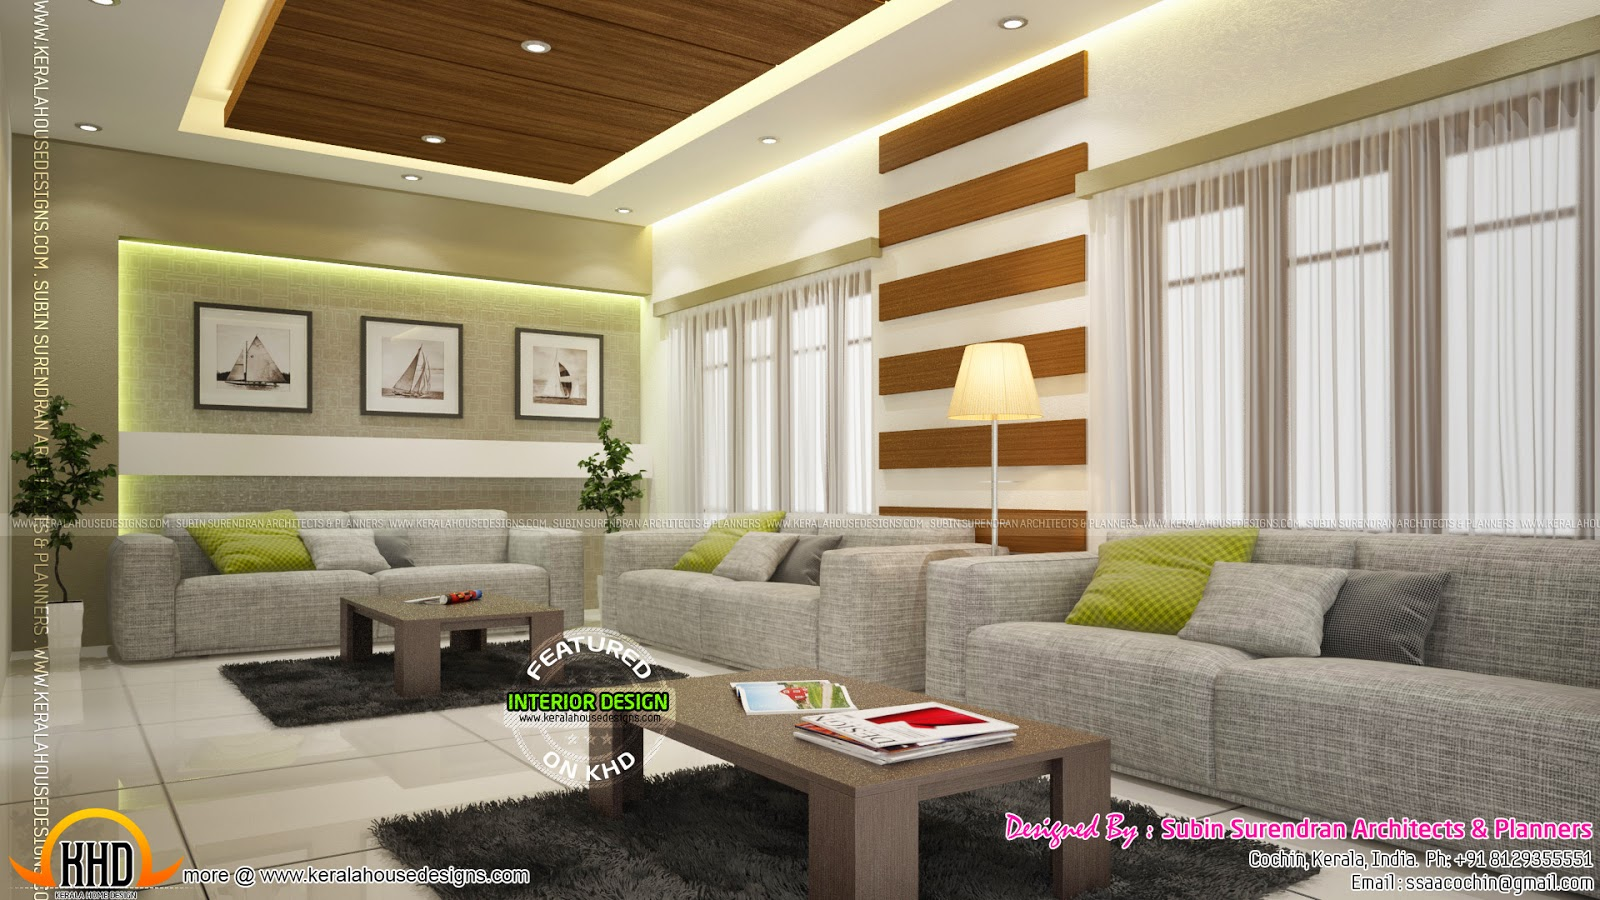 Beautiful home interior designs kerala home design and for Kerala home interior designs photos